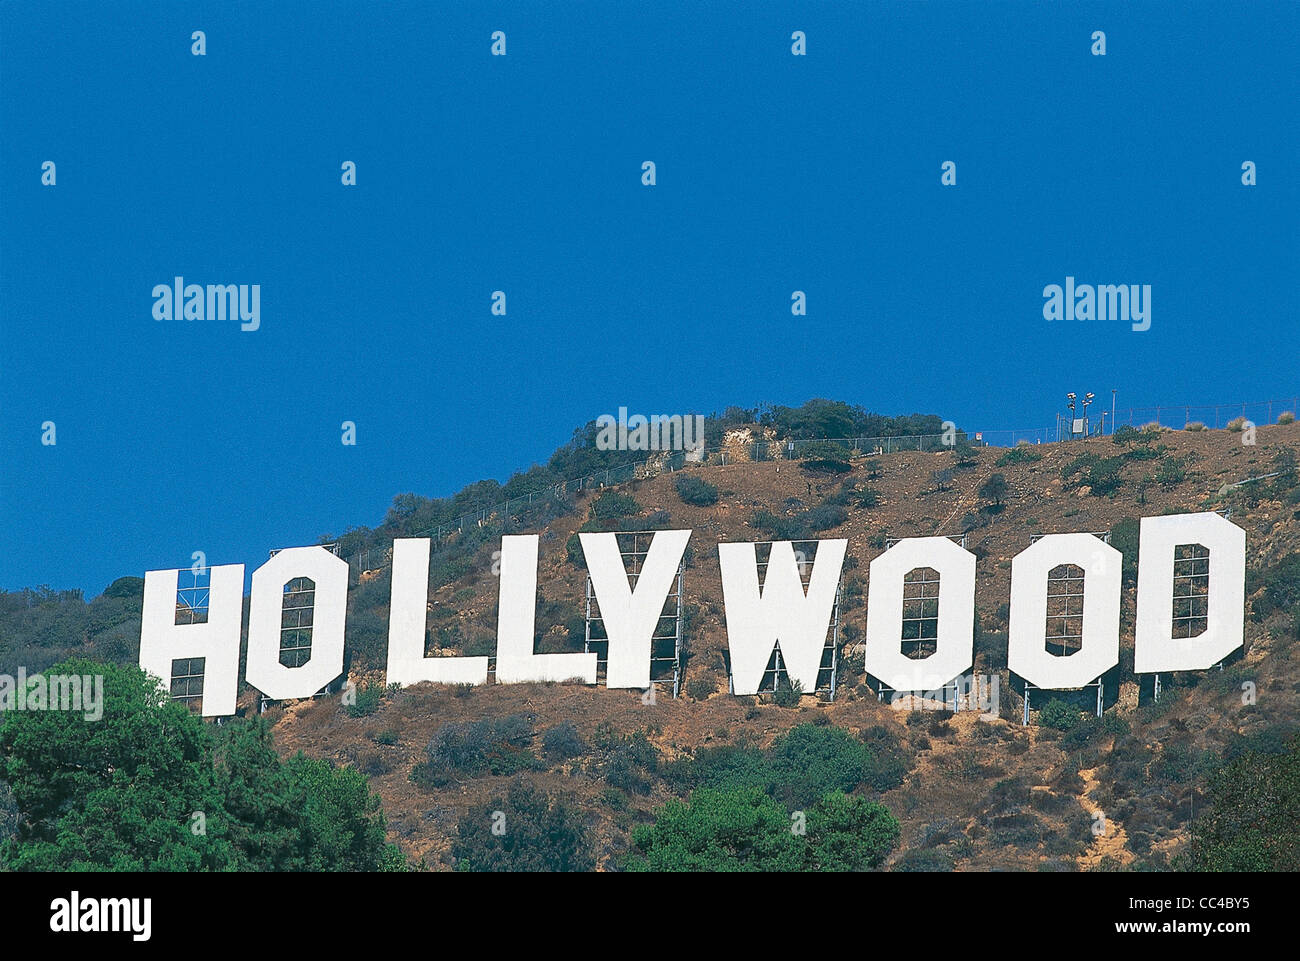 United States Of America California Los Angeles Hollywood Sign 1923 Written On The Great Hill